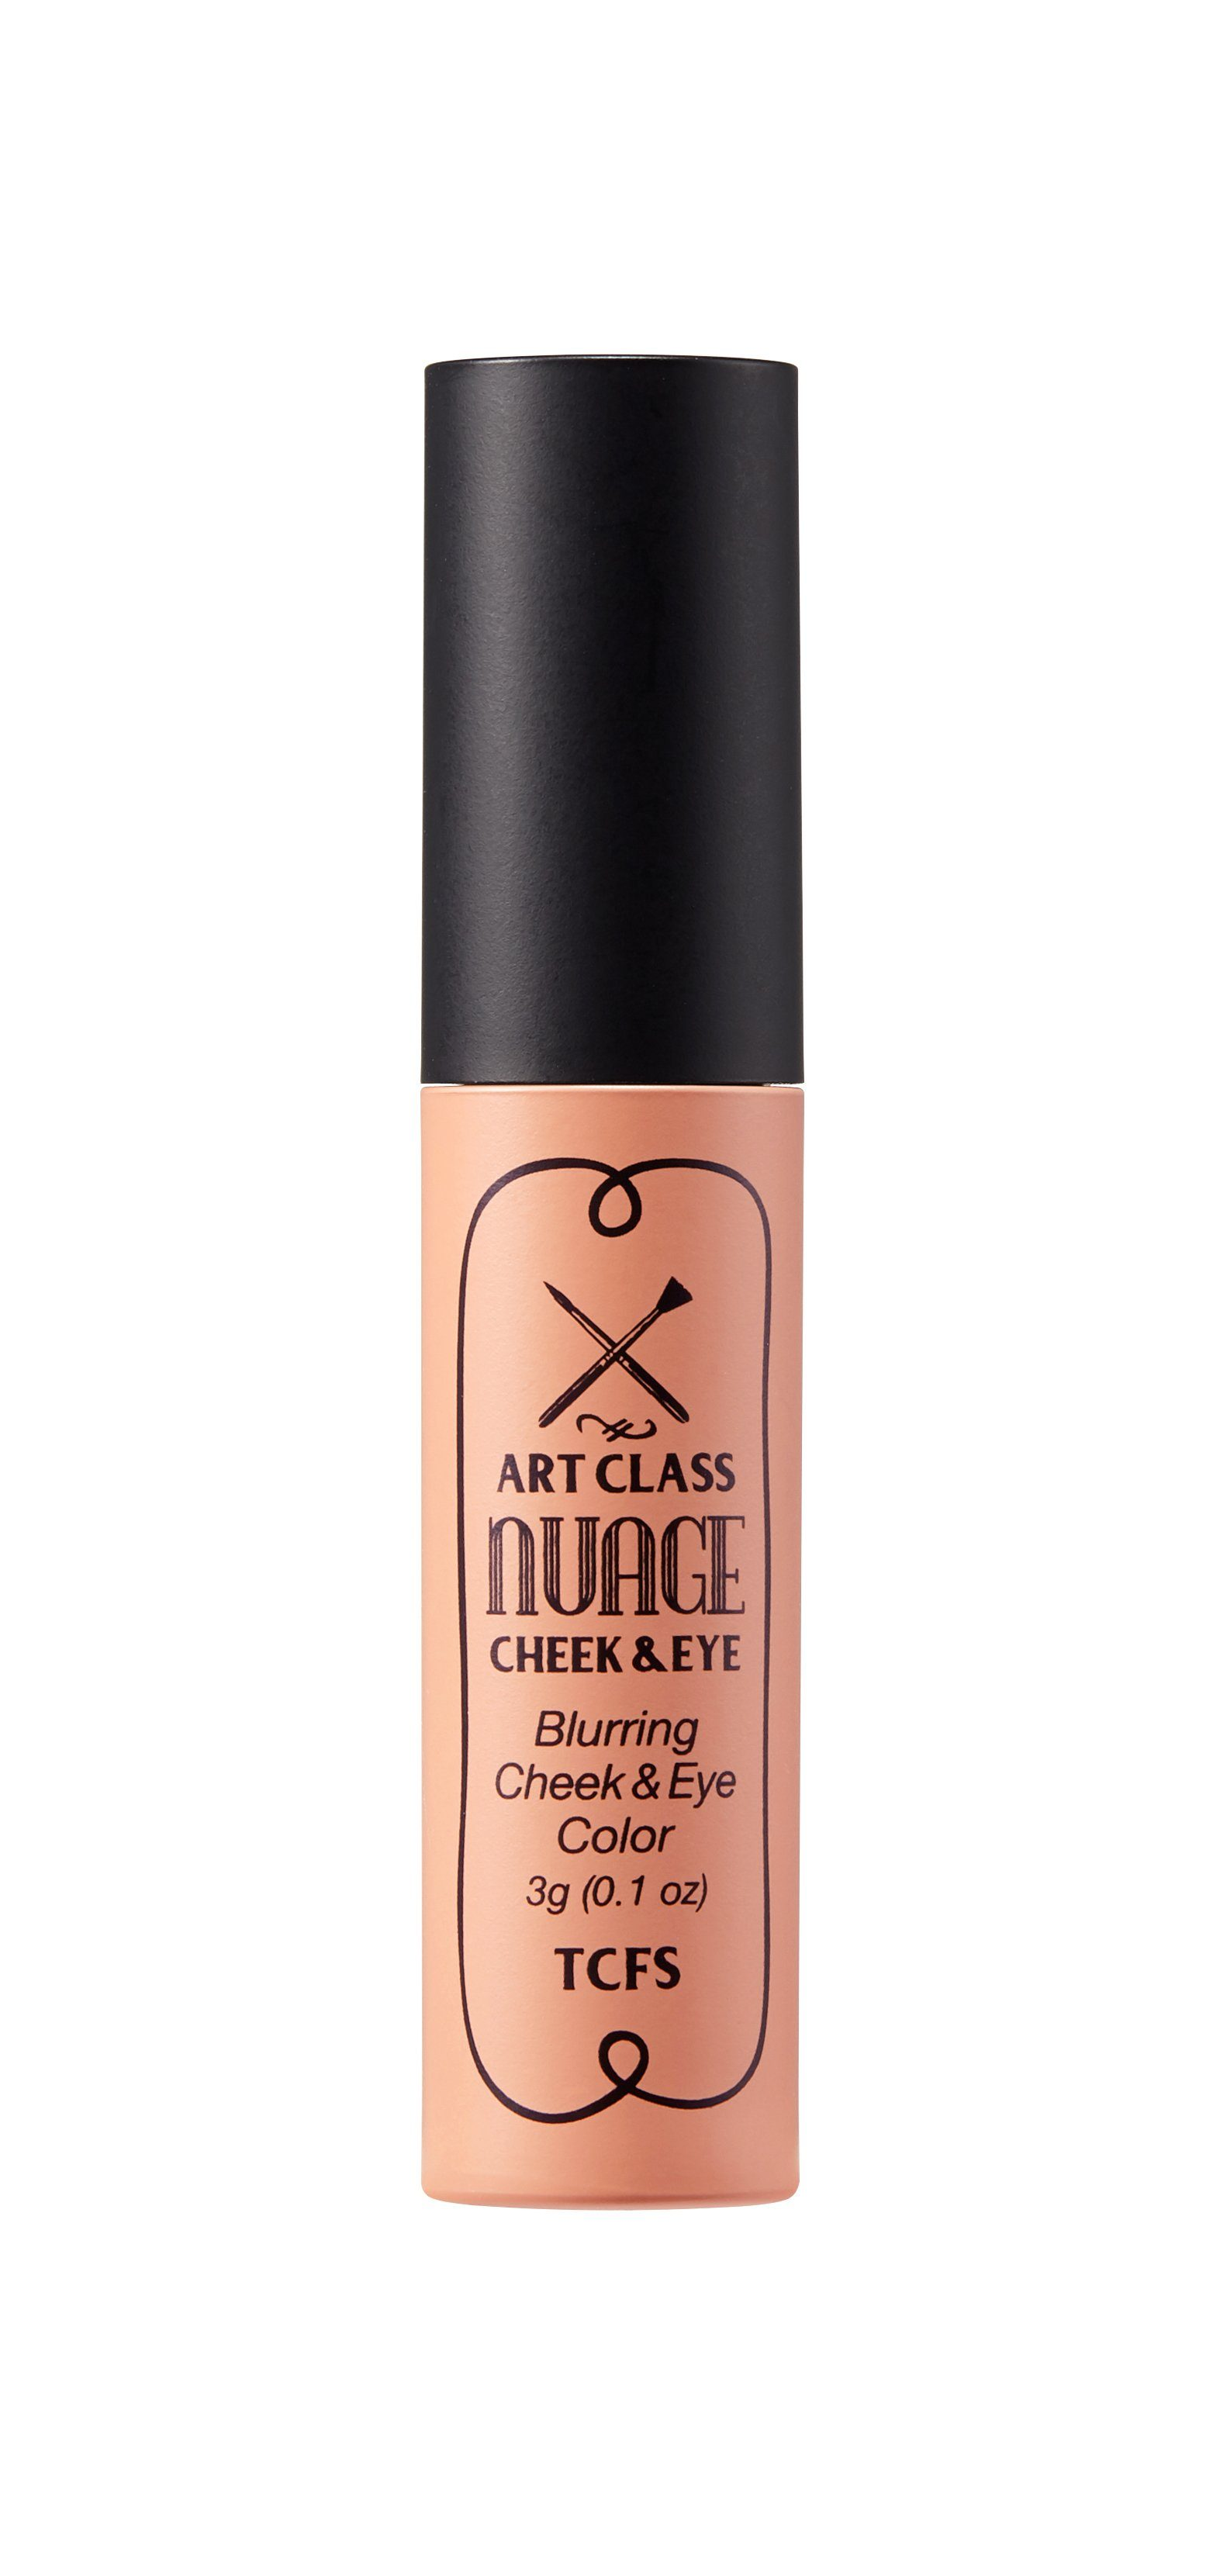 Health & Beauty > Personal Care > Cosmetics > Makeup > Face Makeup > Blushes & Bronzers - Artclass Nuage Cheek & Eye #1 Róż Do Policzków I Cień Do Powiek 2w1 20 G